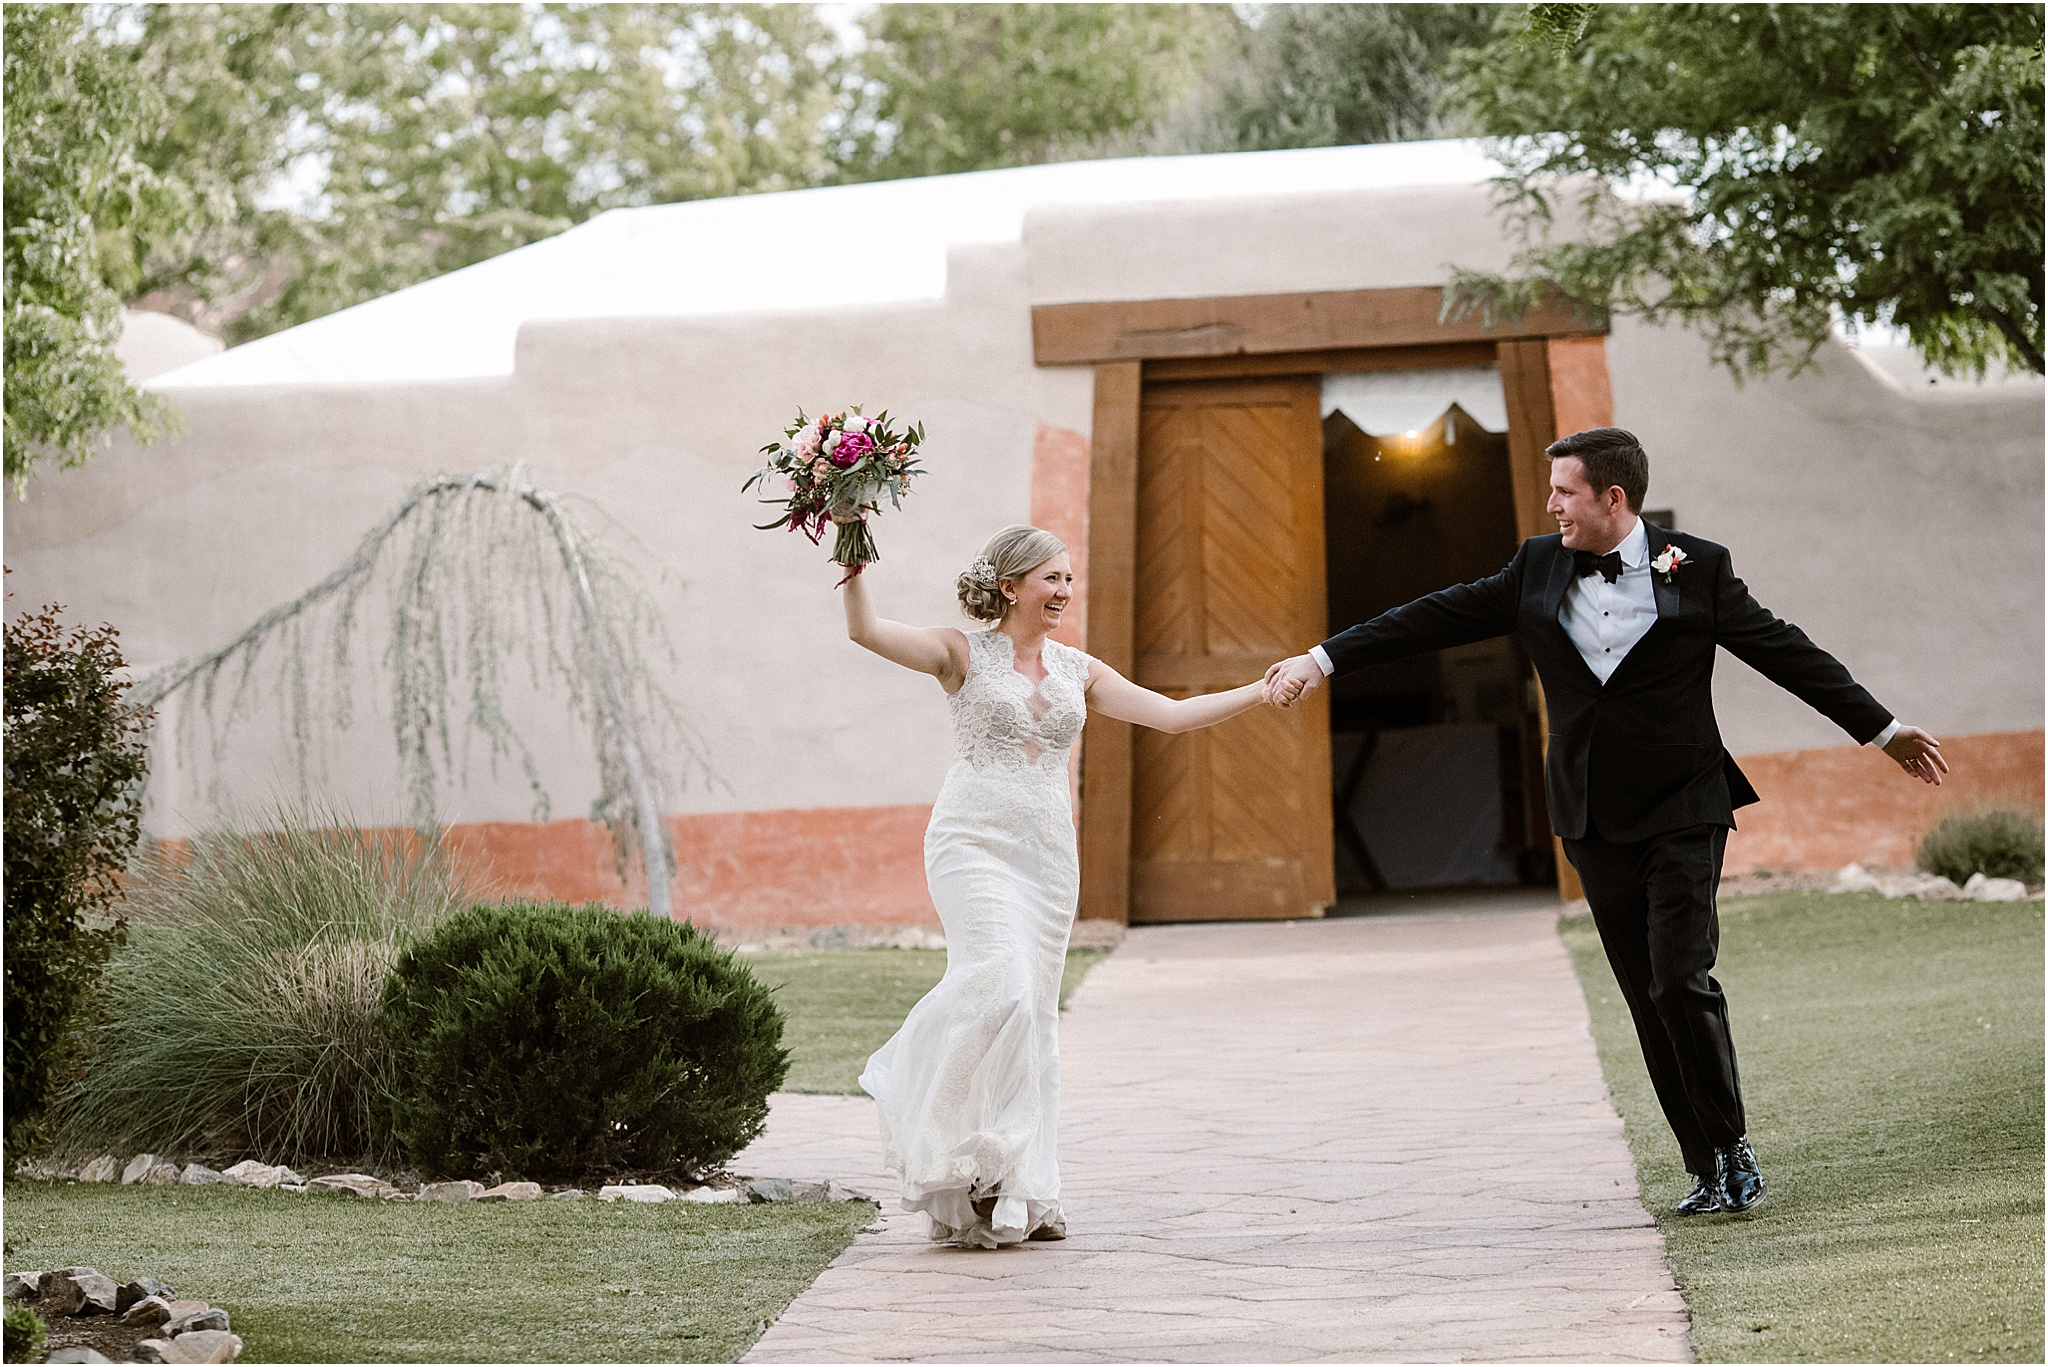 JENNA_JEROME_BLUE ROSE PHOTOGRAPHY_ABQ WEDDING_52